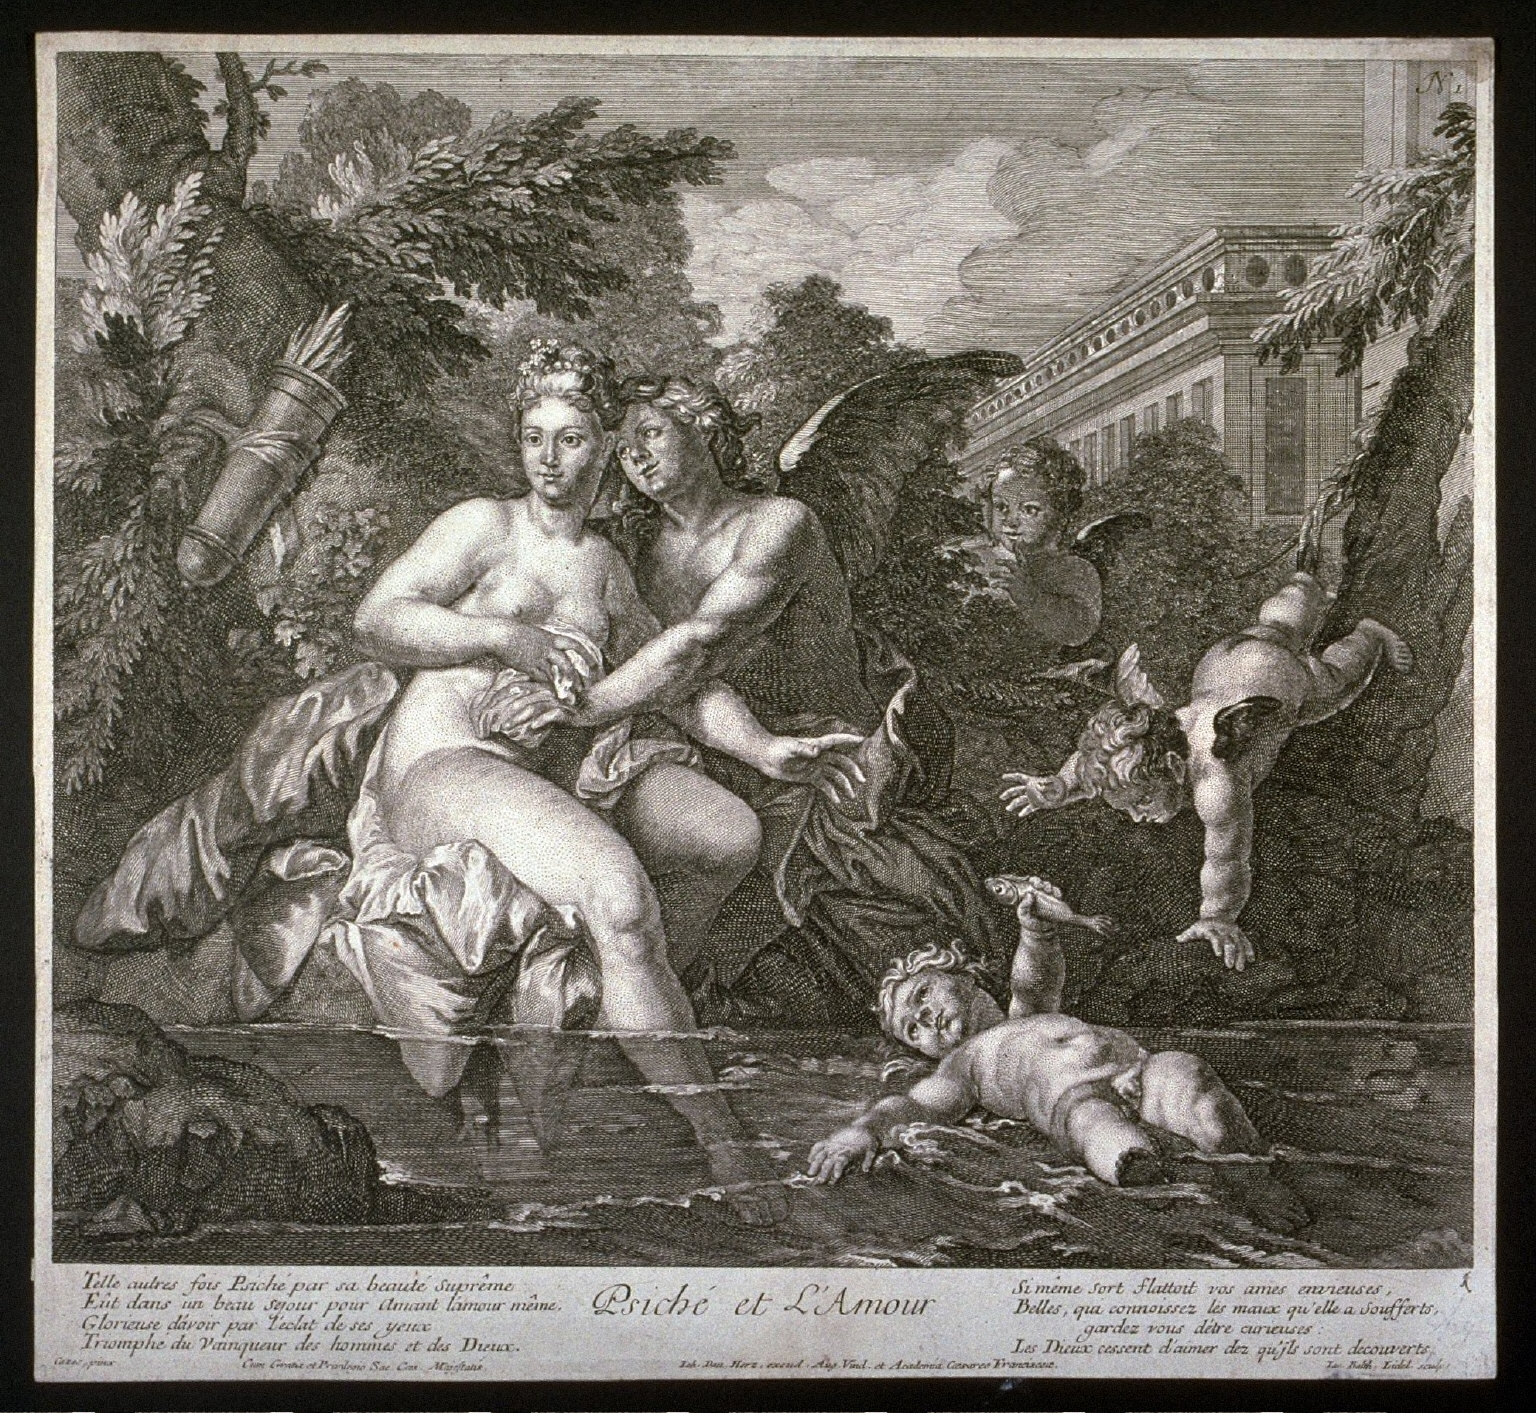 Psyche and Amor